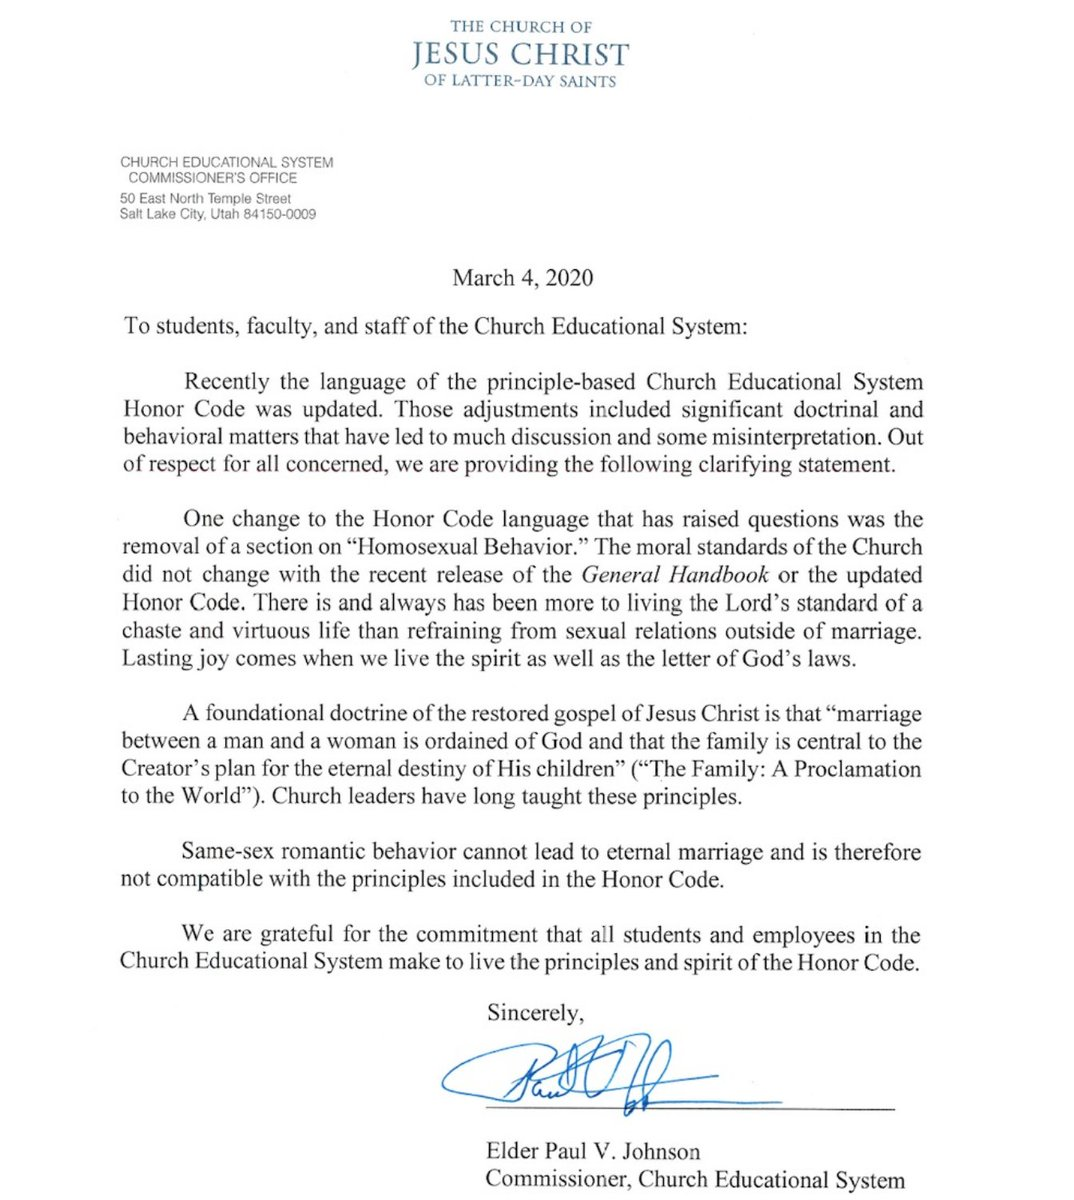 Today this letter from Elder Paul V. Johnson, Commissioner of the Church Educational System, regarding the updated Honor Code was sent to students and employees at all CES schools.